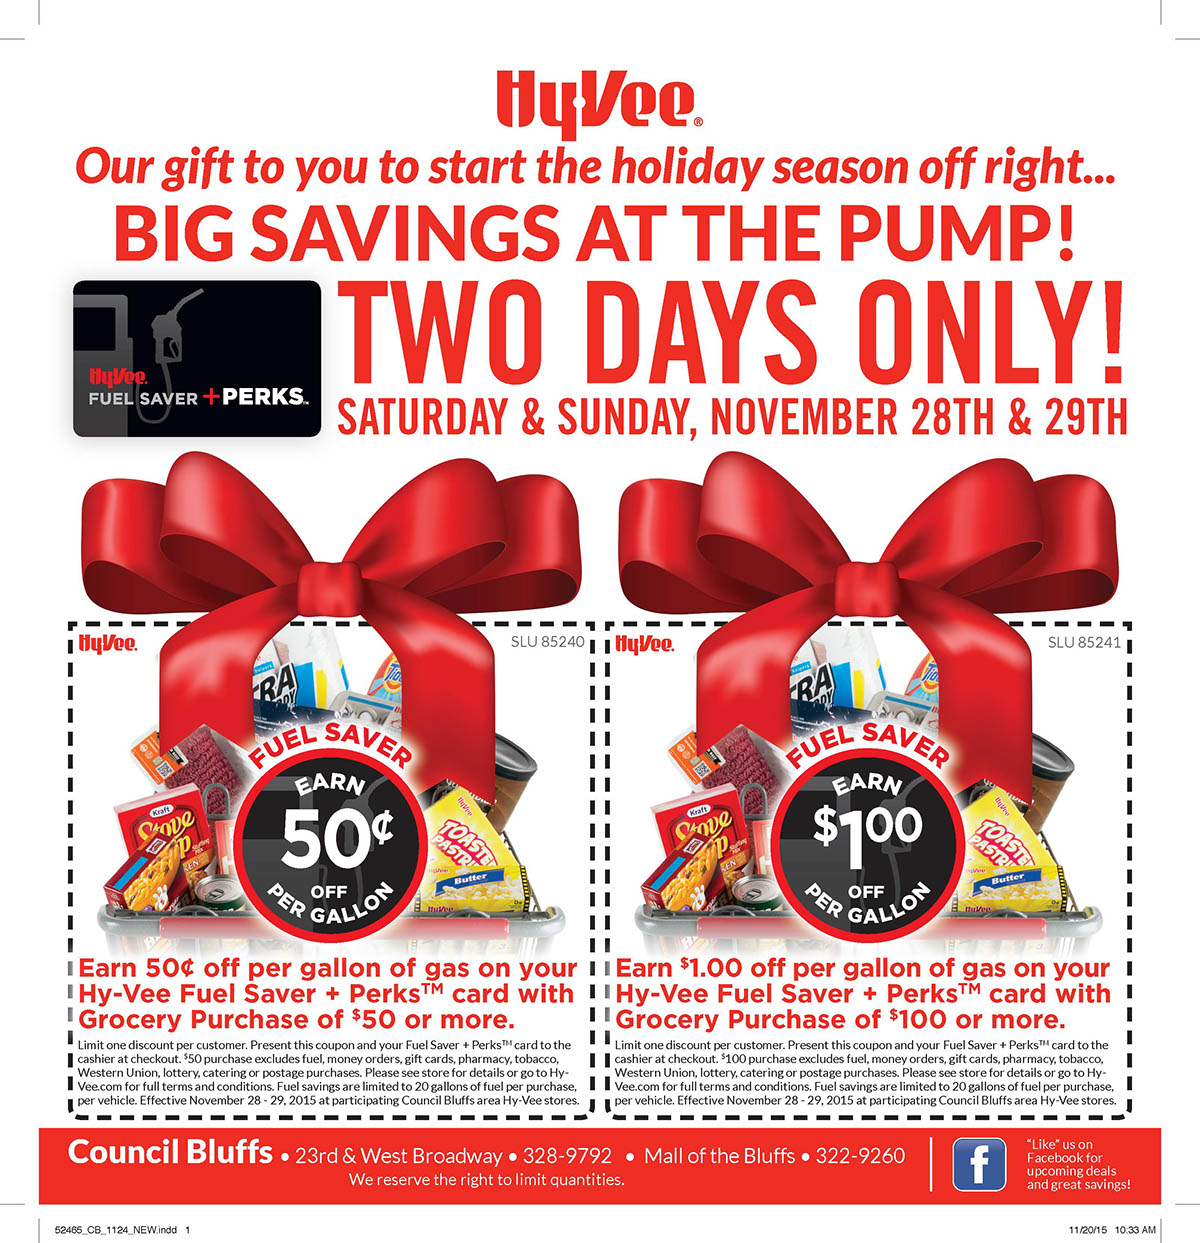 photo about Adventureland Coupons Printable referred to as Adventureland des moines discount codes hyvee - Elephant bar